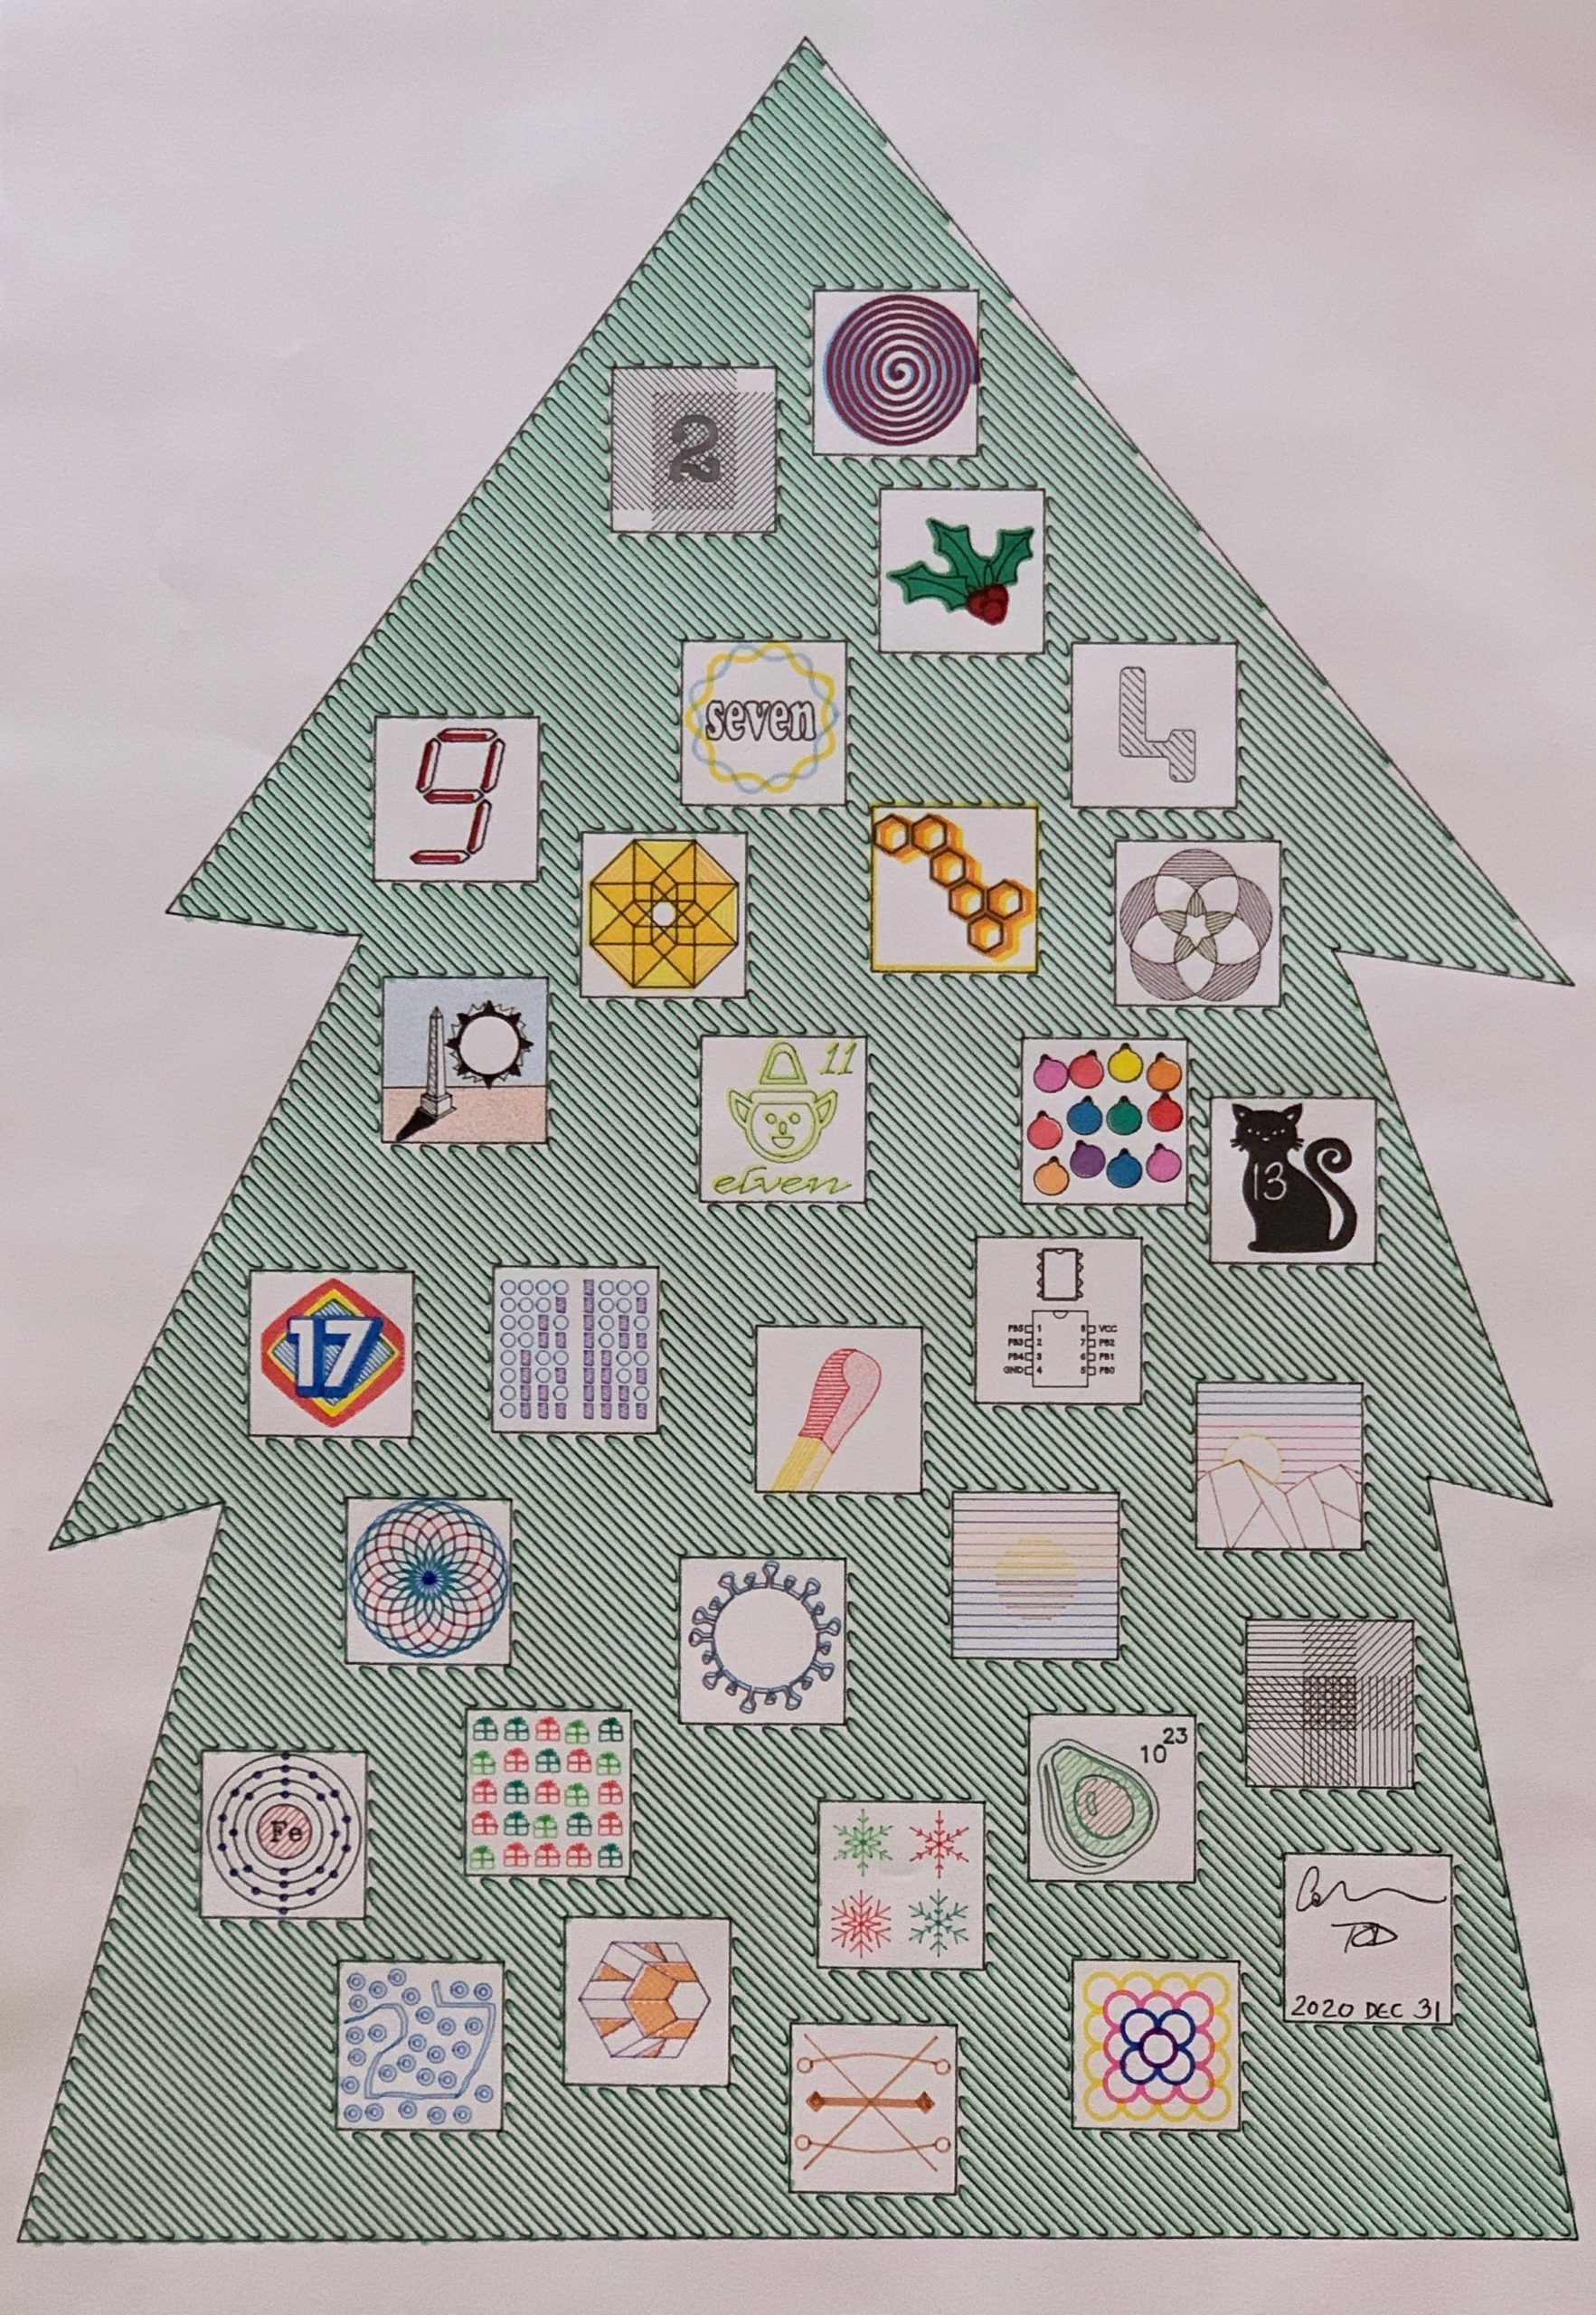 Image of a drawing of a Christmas Tree with 31 boxes, each filled with a unique drawing